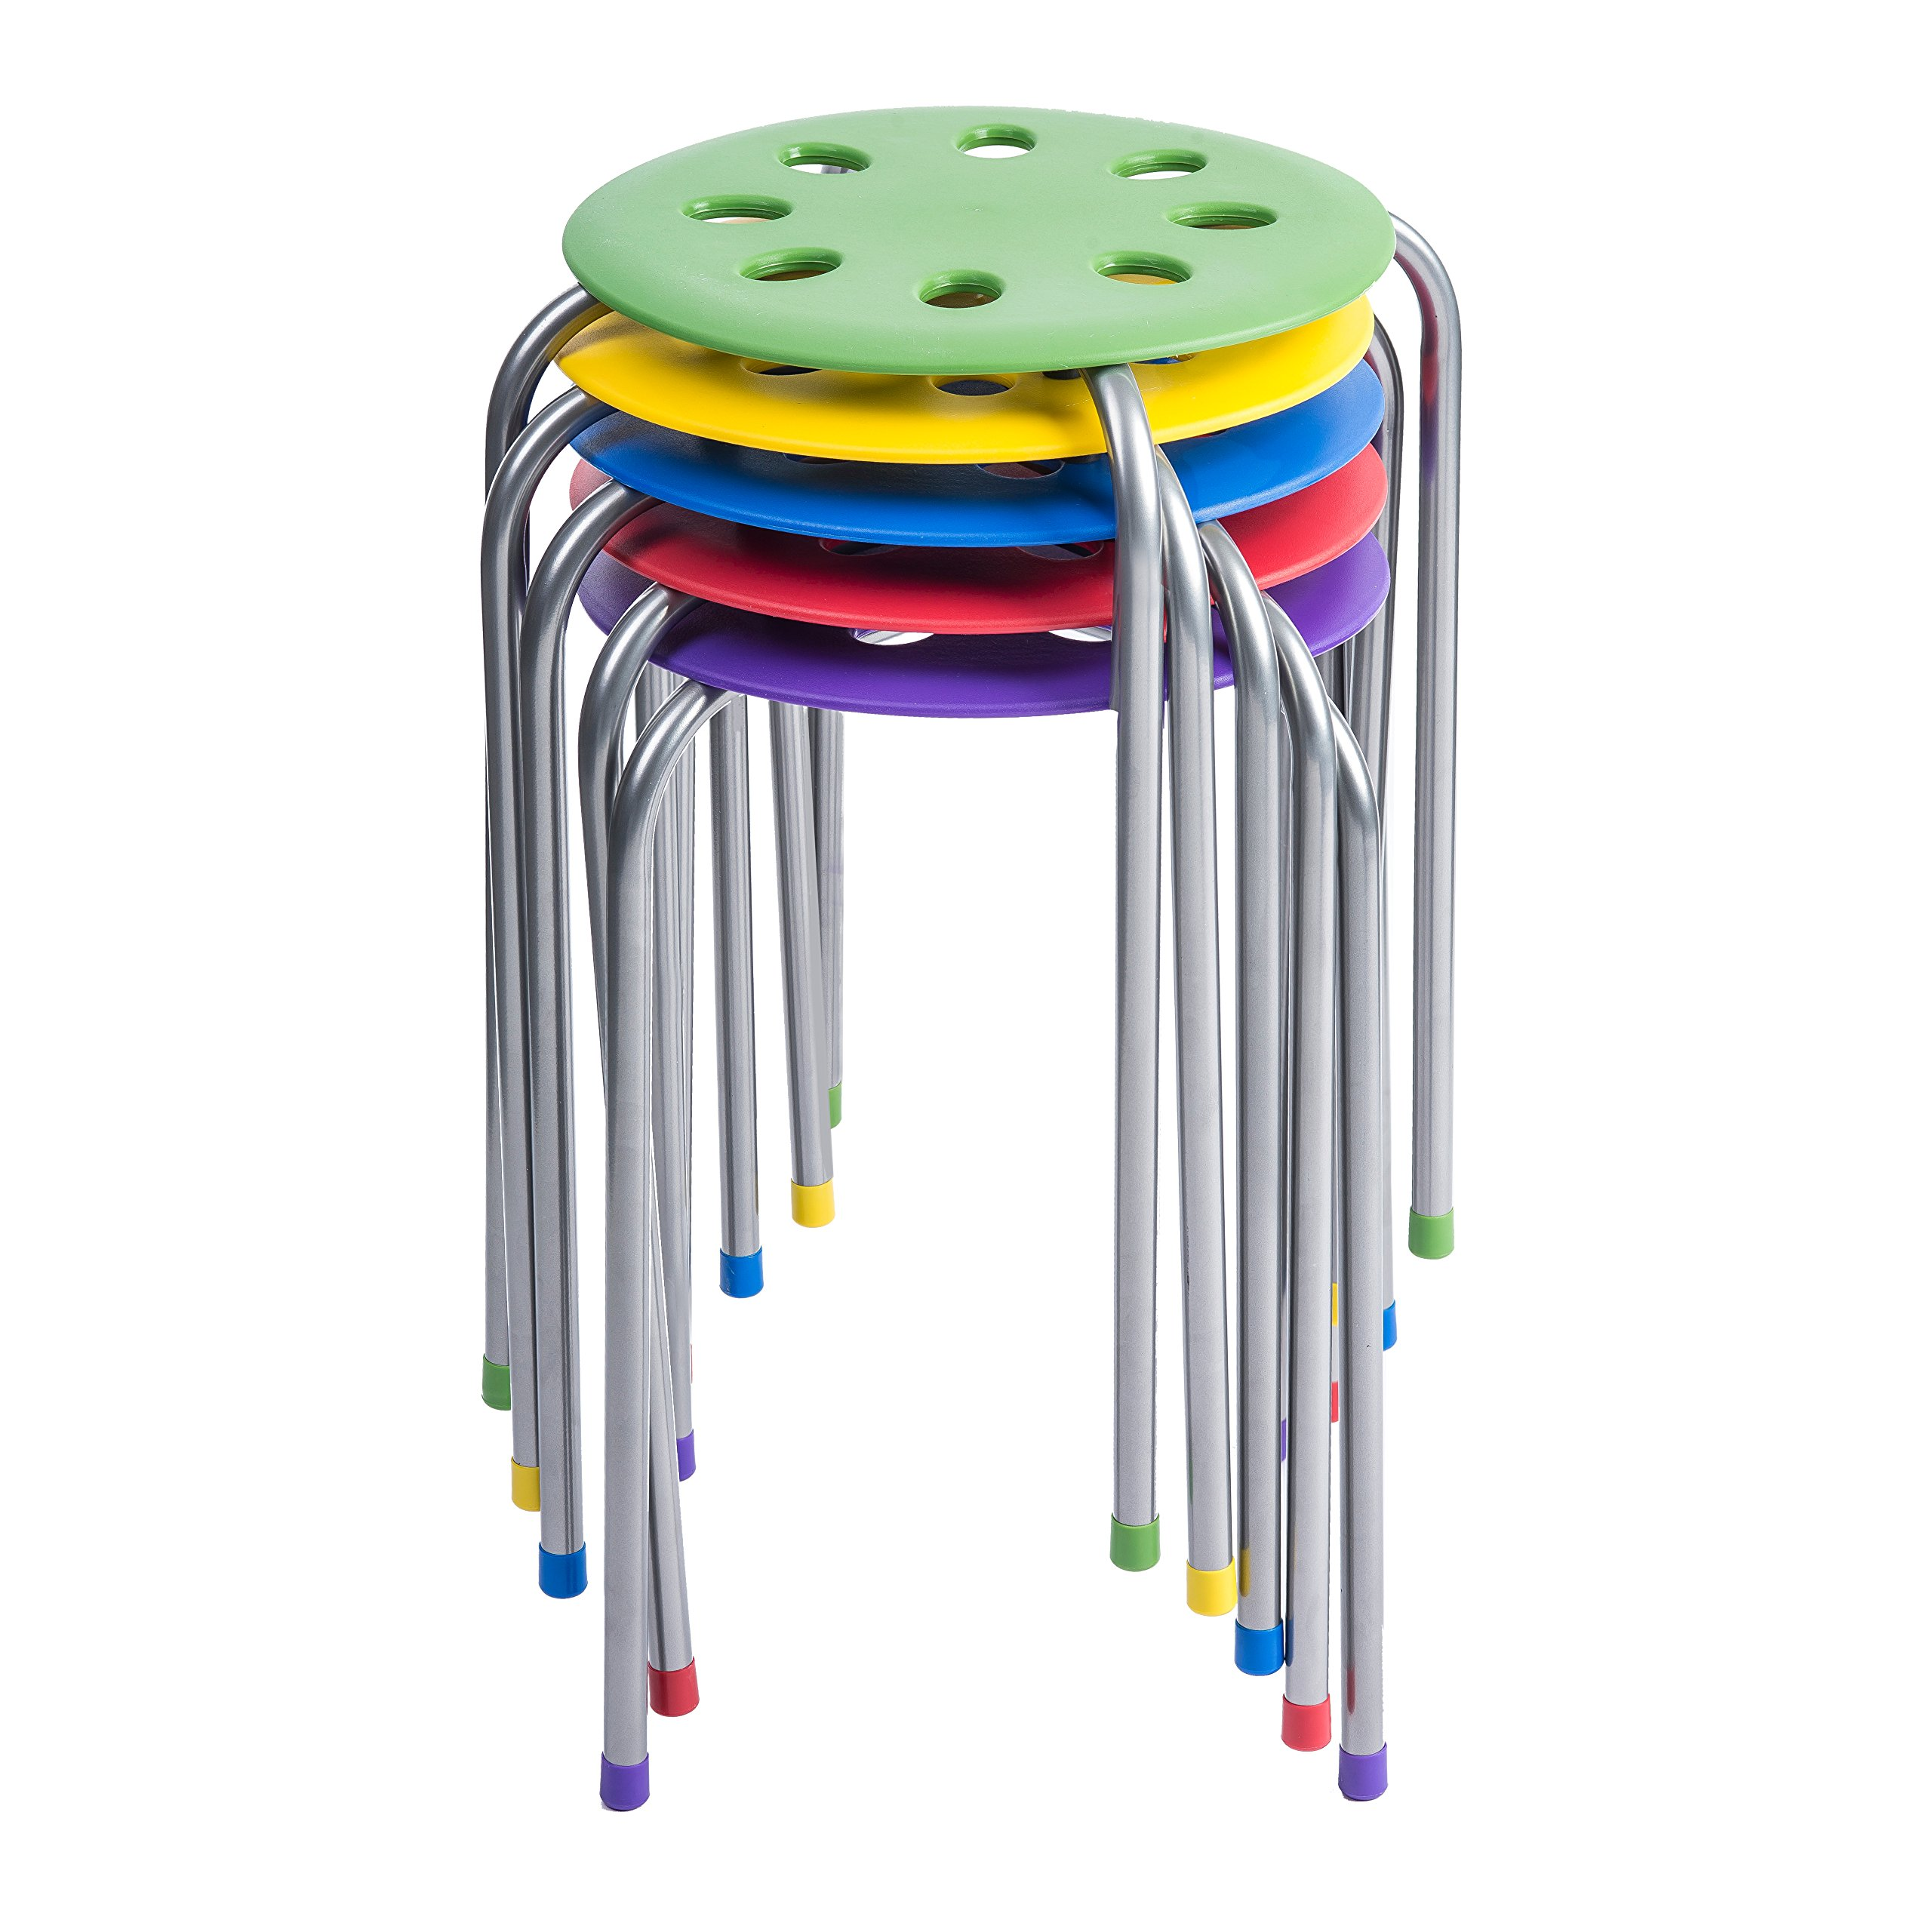 Pearington 16 Gauge Steel Classroom Furniture Stools for Kids; Multipurpose Stool Chairs; Flexible Seating; Stacking Stools- Set of 5, Multi- Color